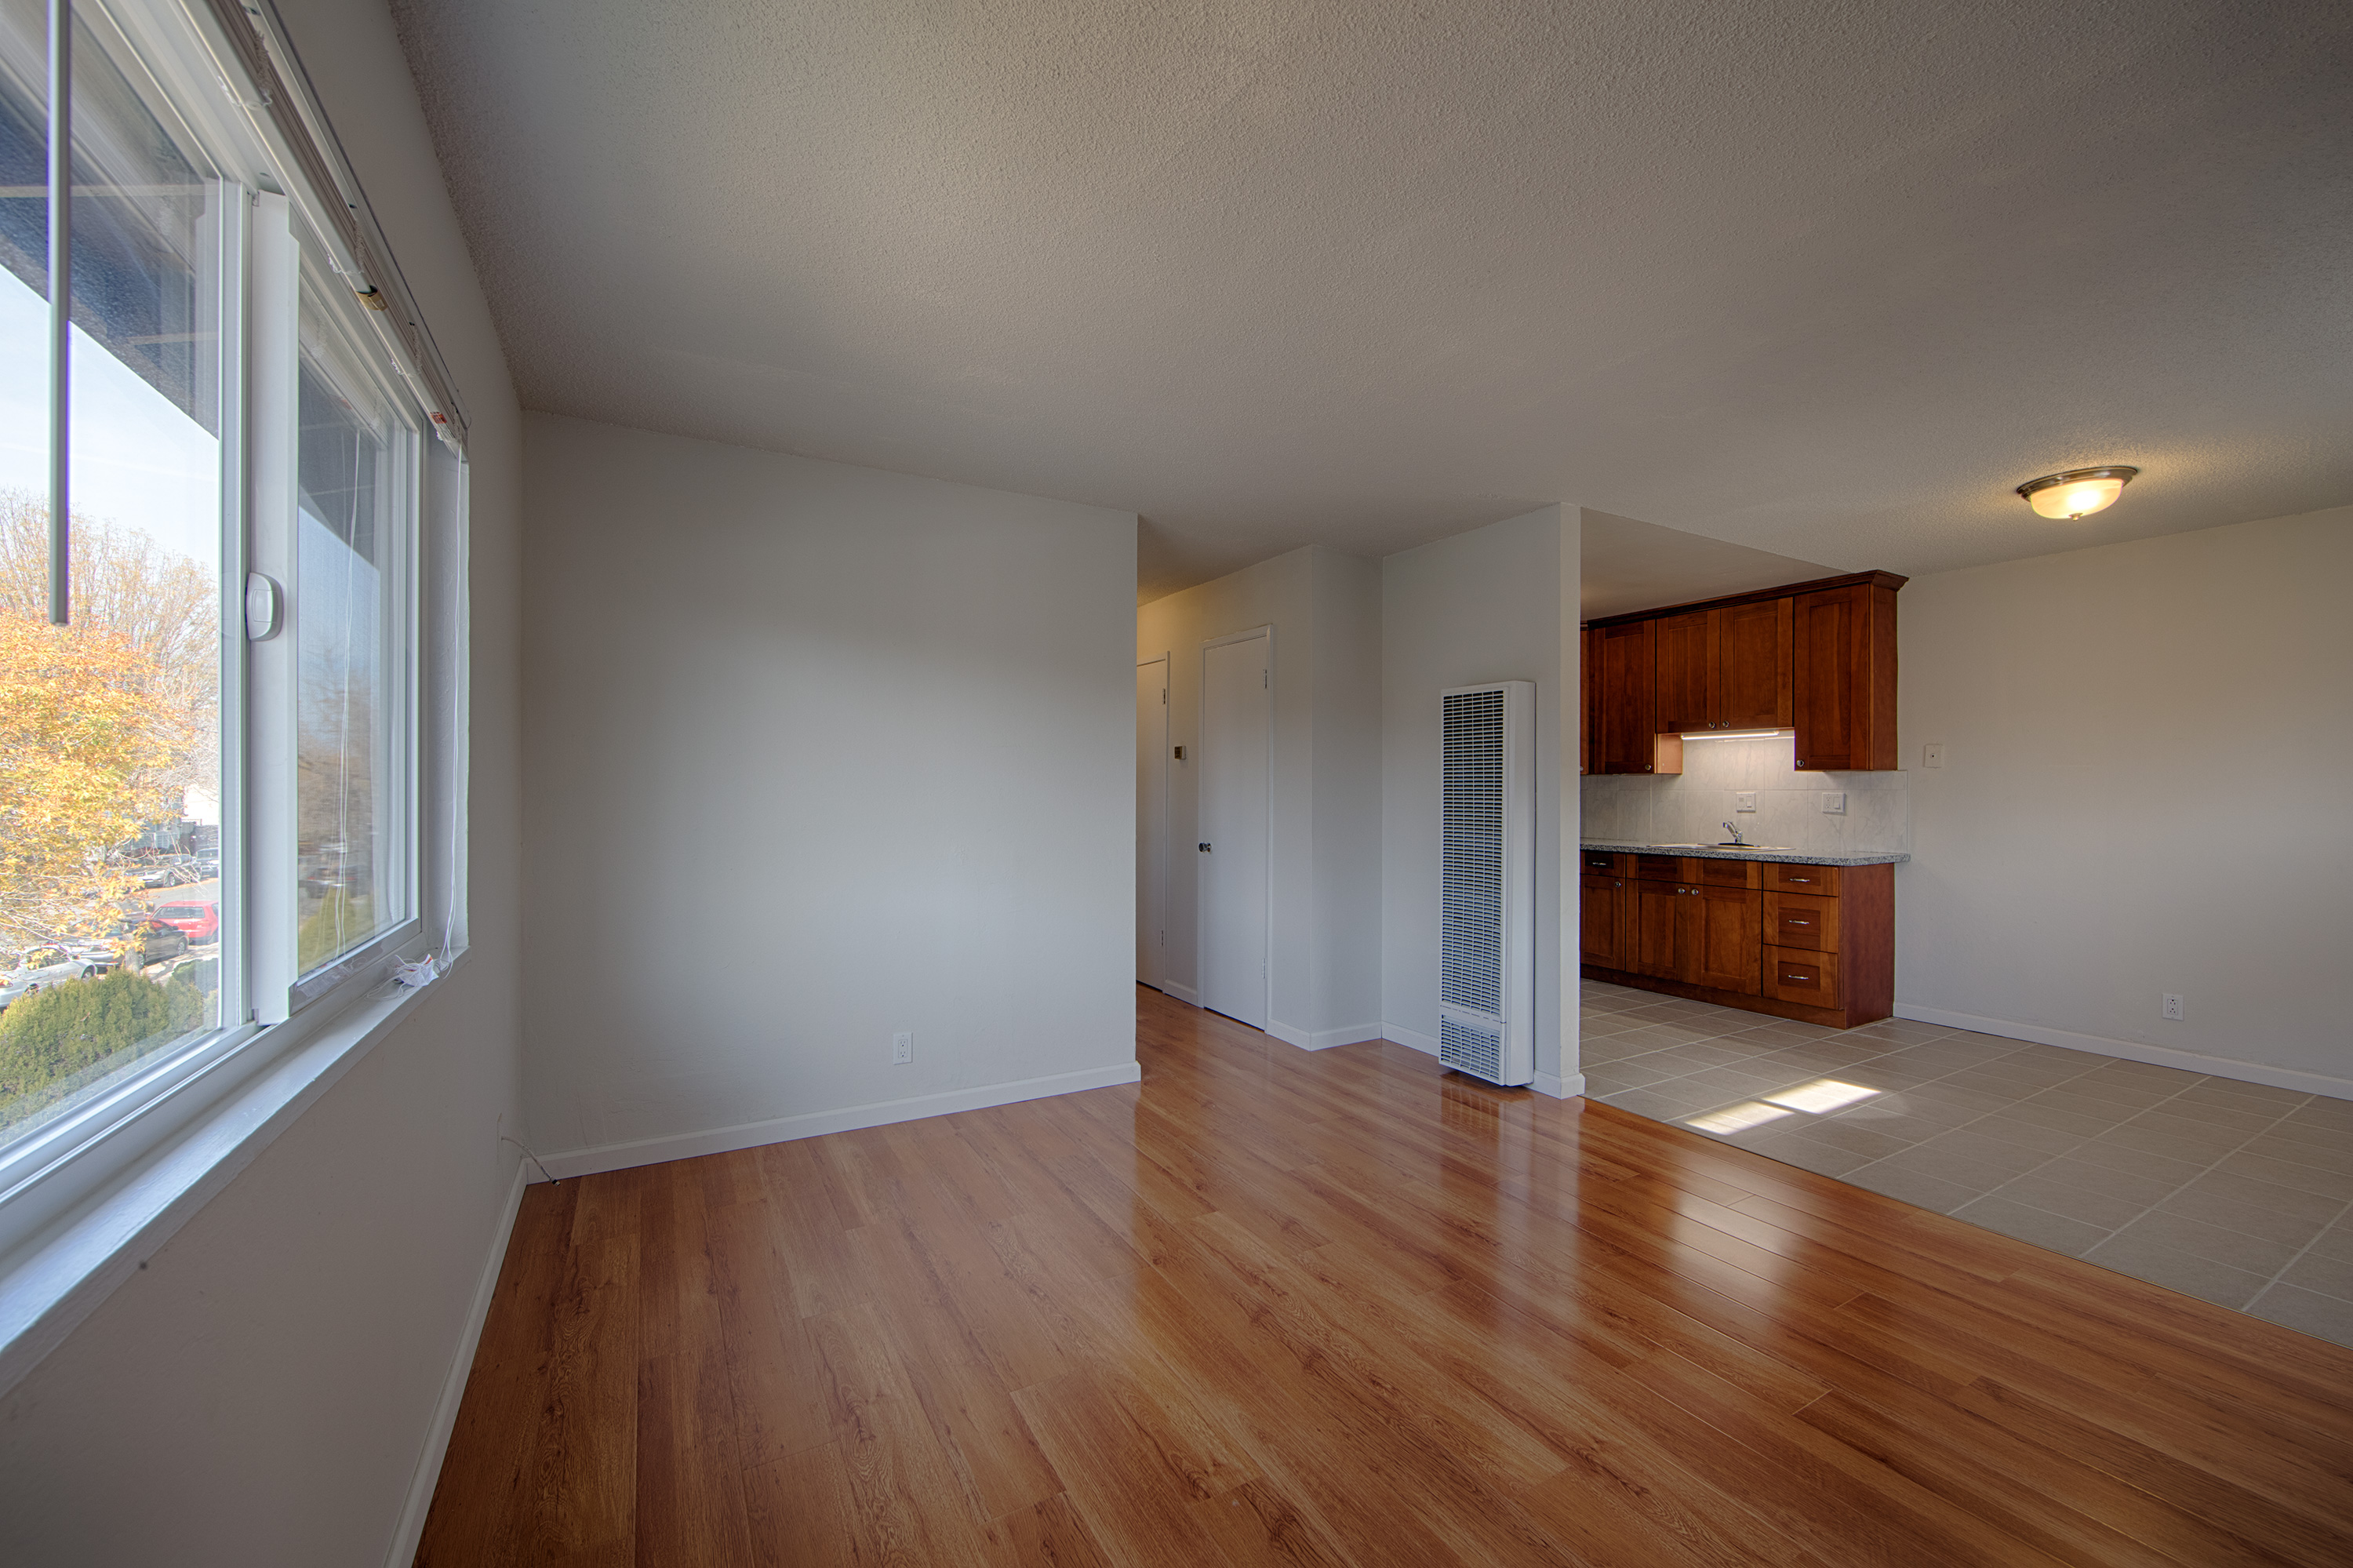 1662 Ontario Dr, Sunnyvale 94087 - Unit 3 Living Room (C)